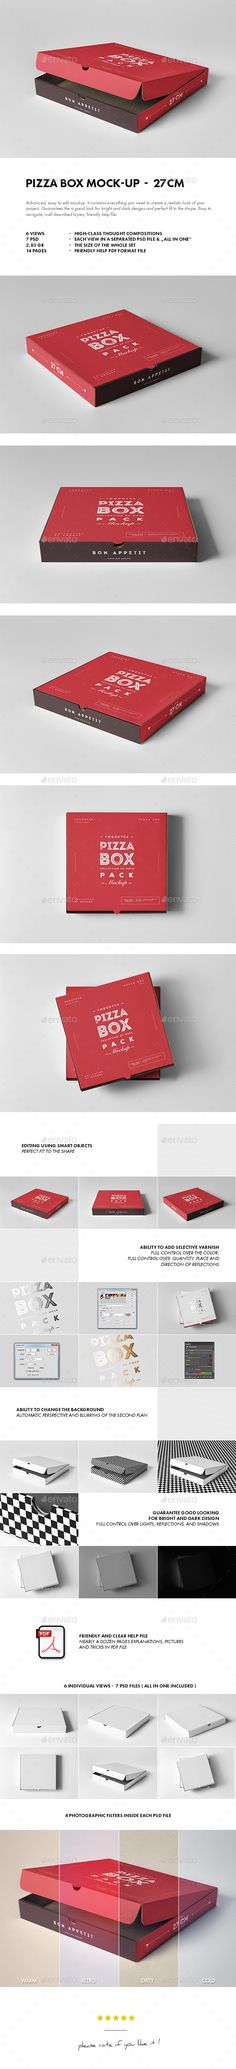 27 Pizza Box Mock-up by yogurt86 27 PIZZA BOX MOCK-UP Advanced, easy to edit mockup. It contains everything you need to create a realistic look of your project. G